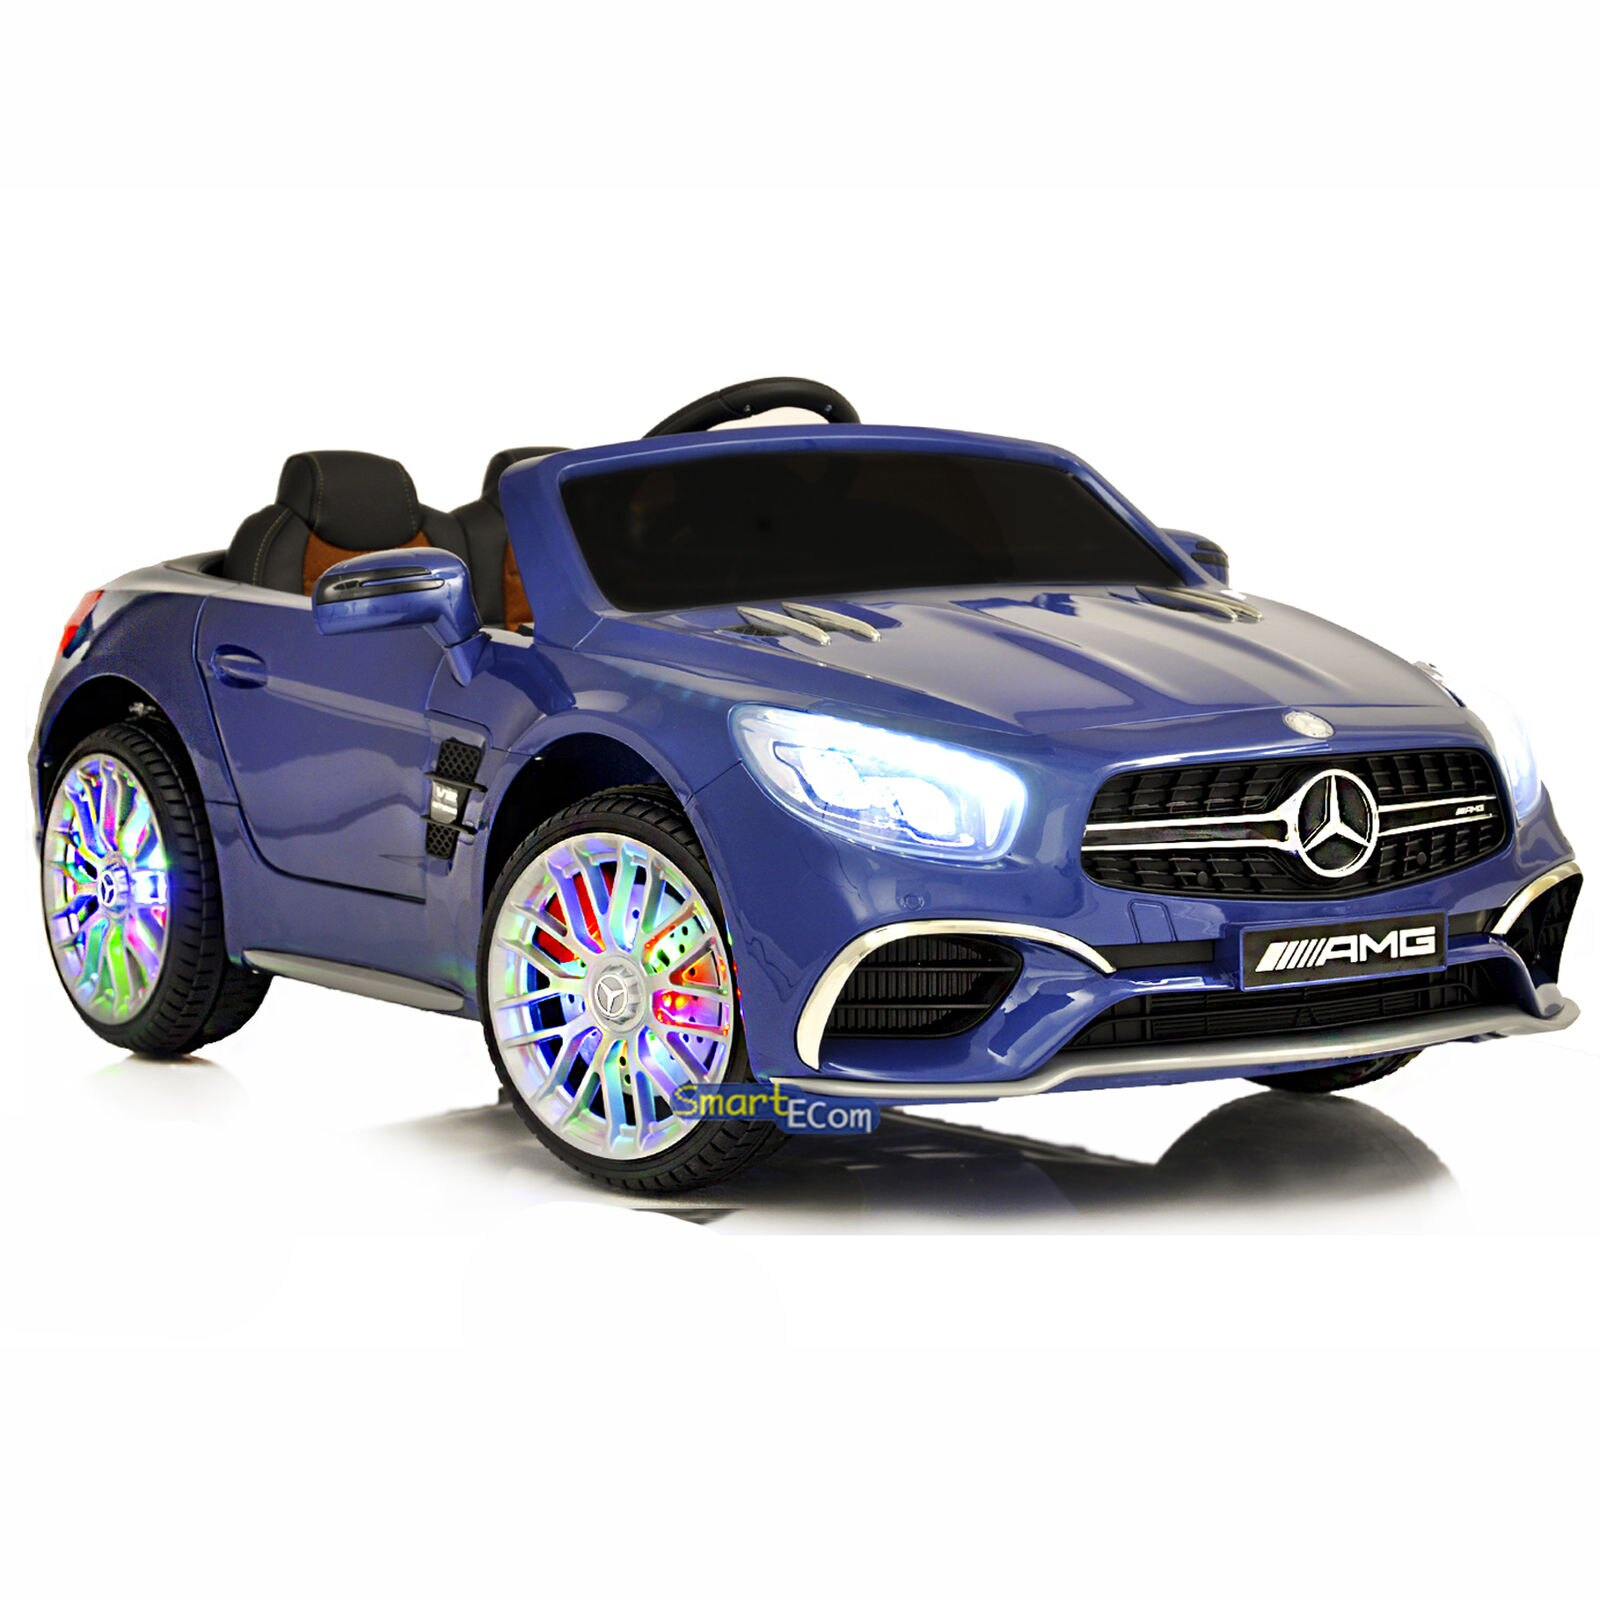 12v Mercedes Amg Sl65 Electric Ride On Car Battery For Kids Rc Mp4 Screen Led Blue